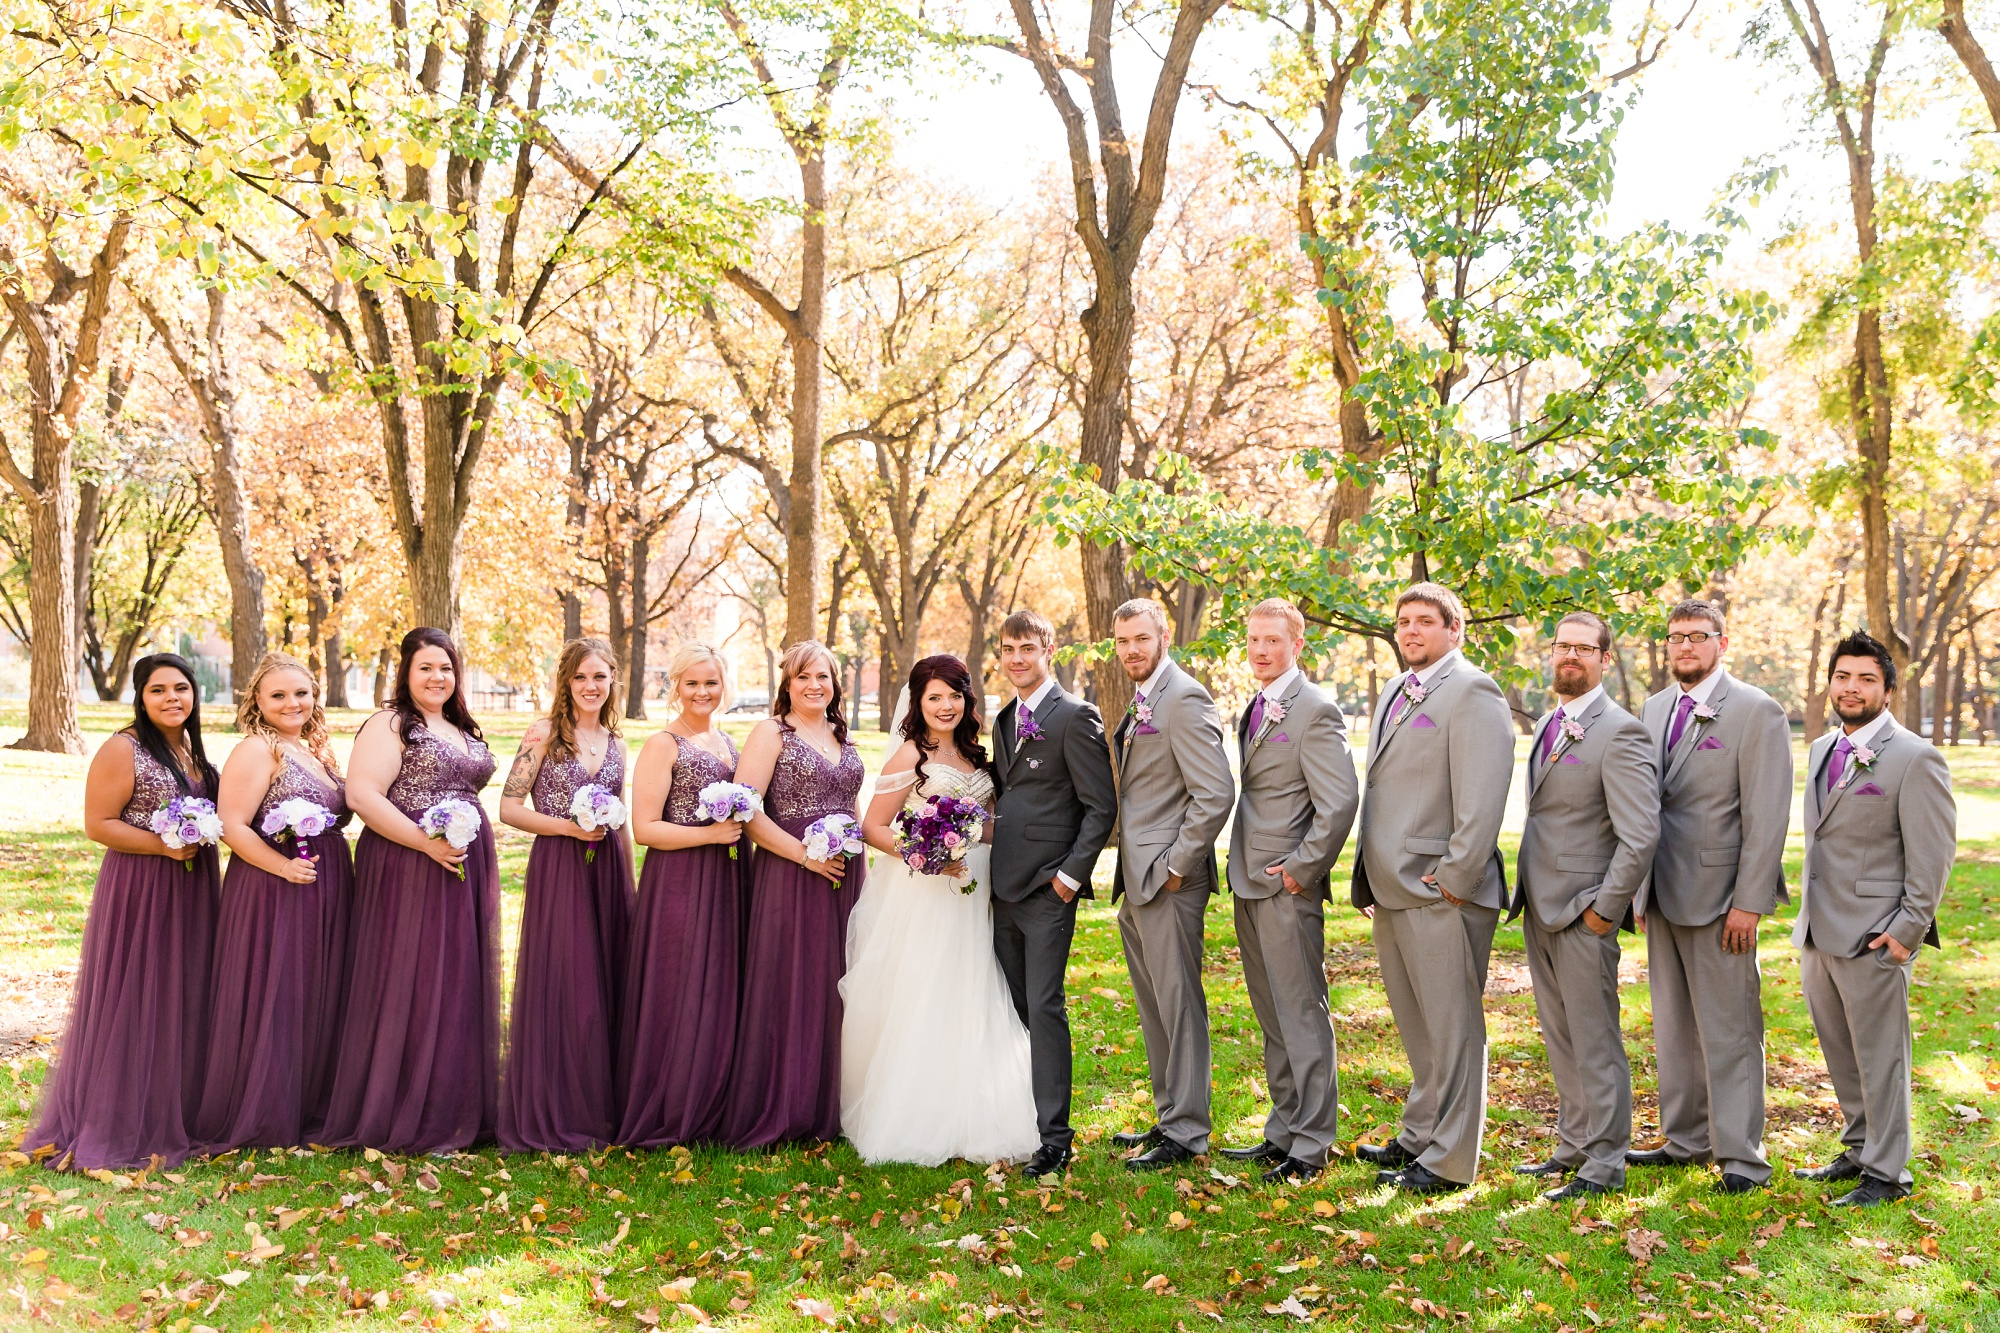 Downtown Fargo Disney Themed Wedding by Amber Langerud Photography | Bridal Party Island Park